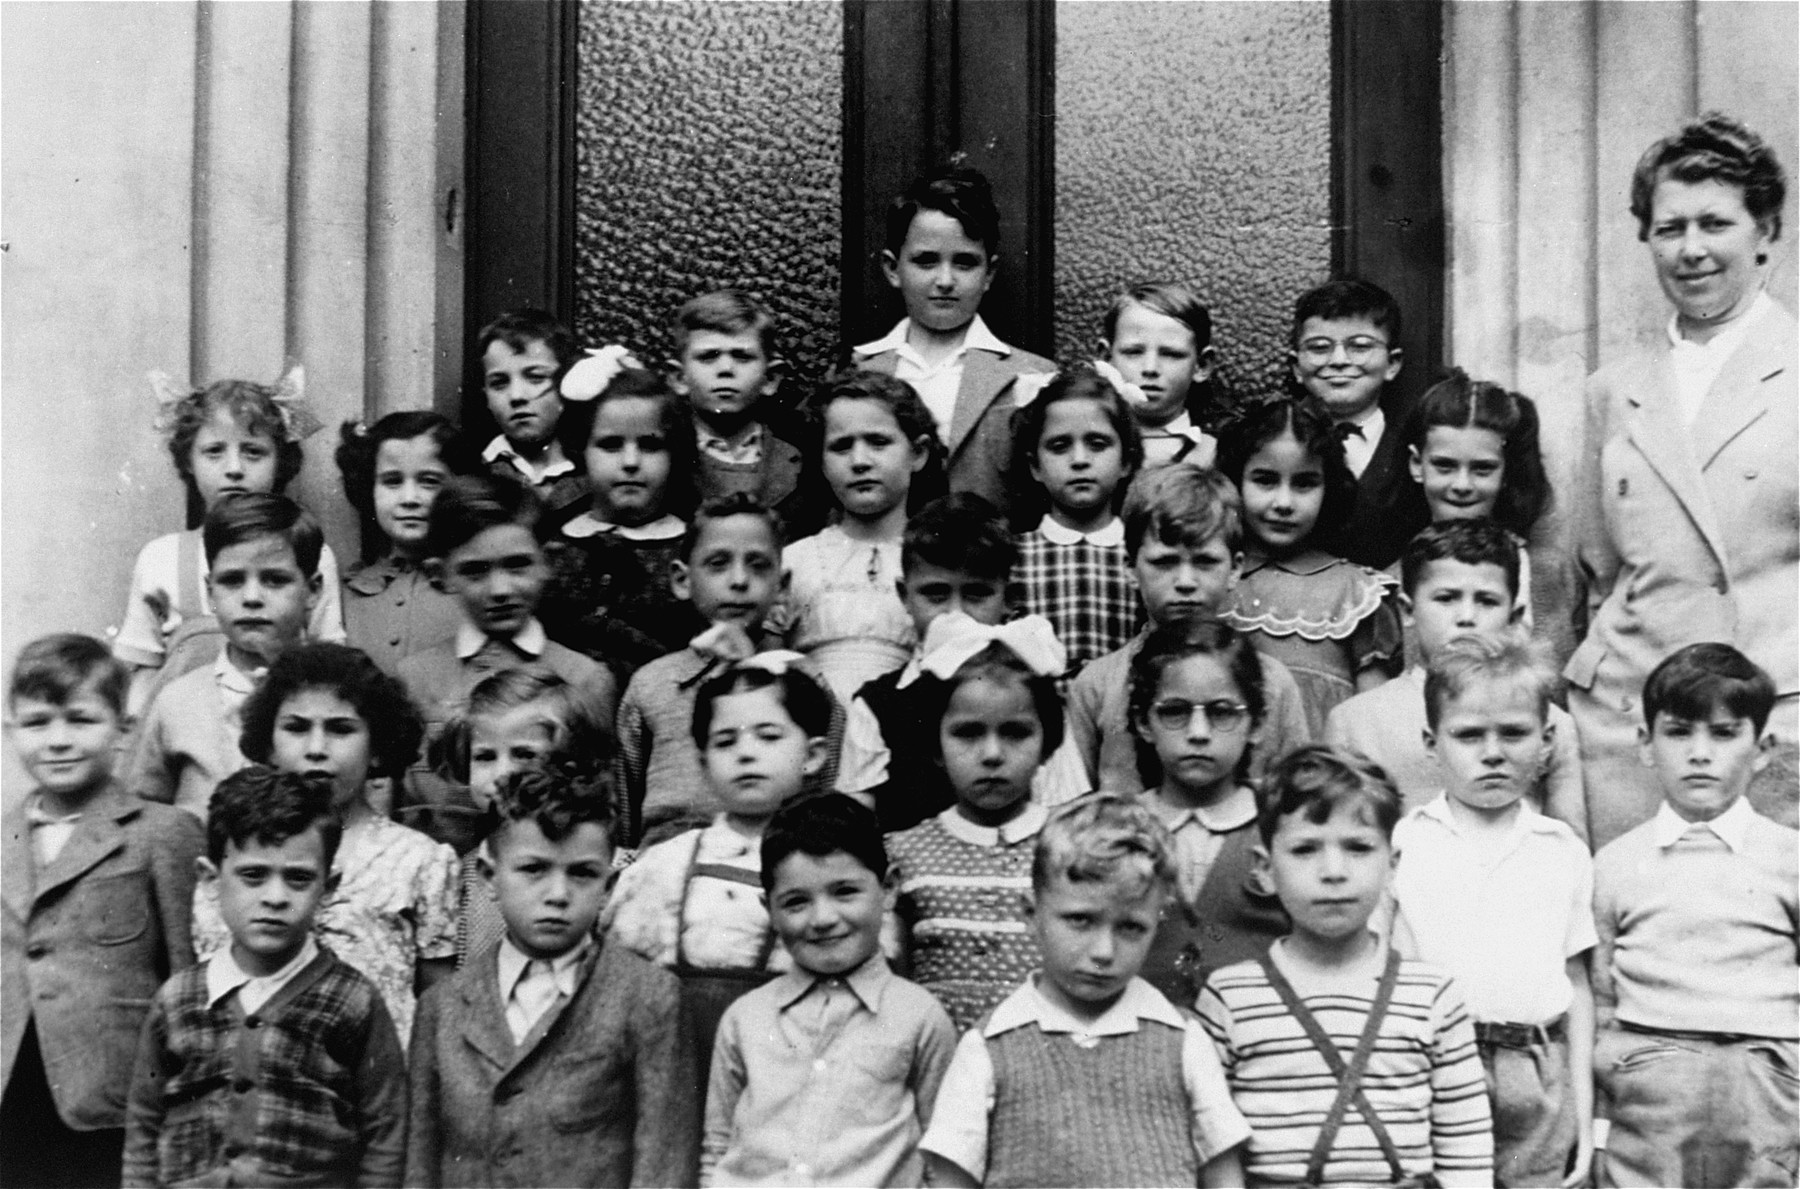 Group photo of the first grade class at the Tachkemoni Jewish private school in Antwerp.    Jeanine Ament, is pictured in the second row from the front, fourth from the right.  The teacher is Mme Boucher.